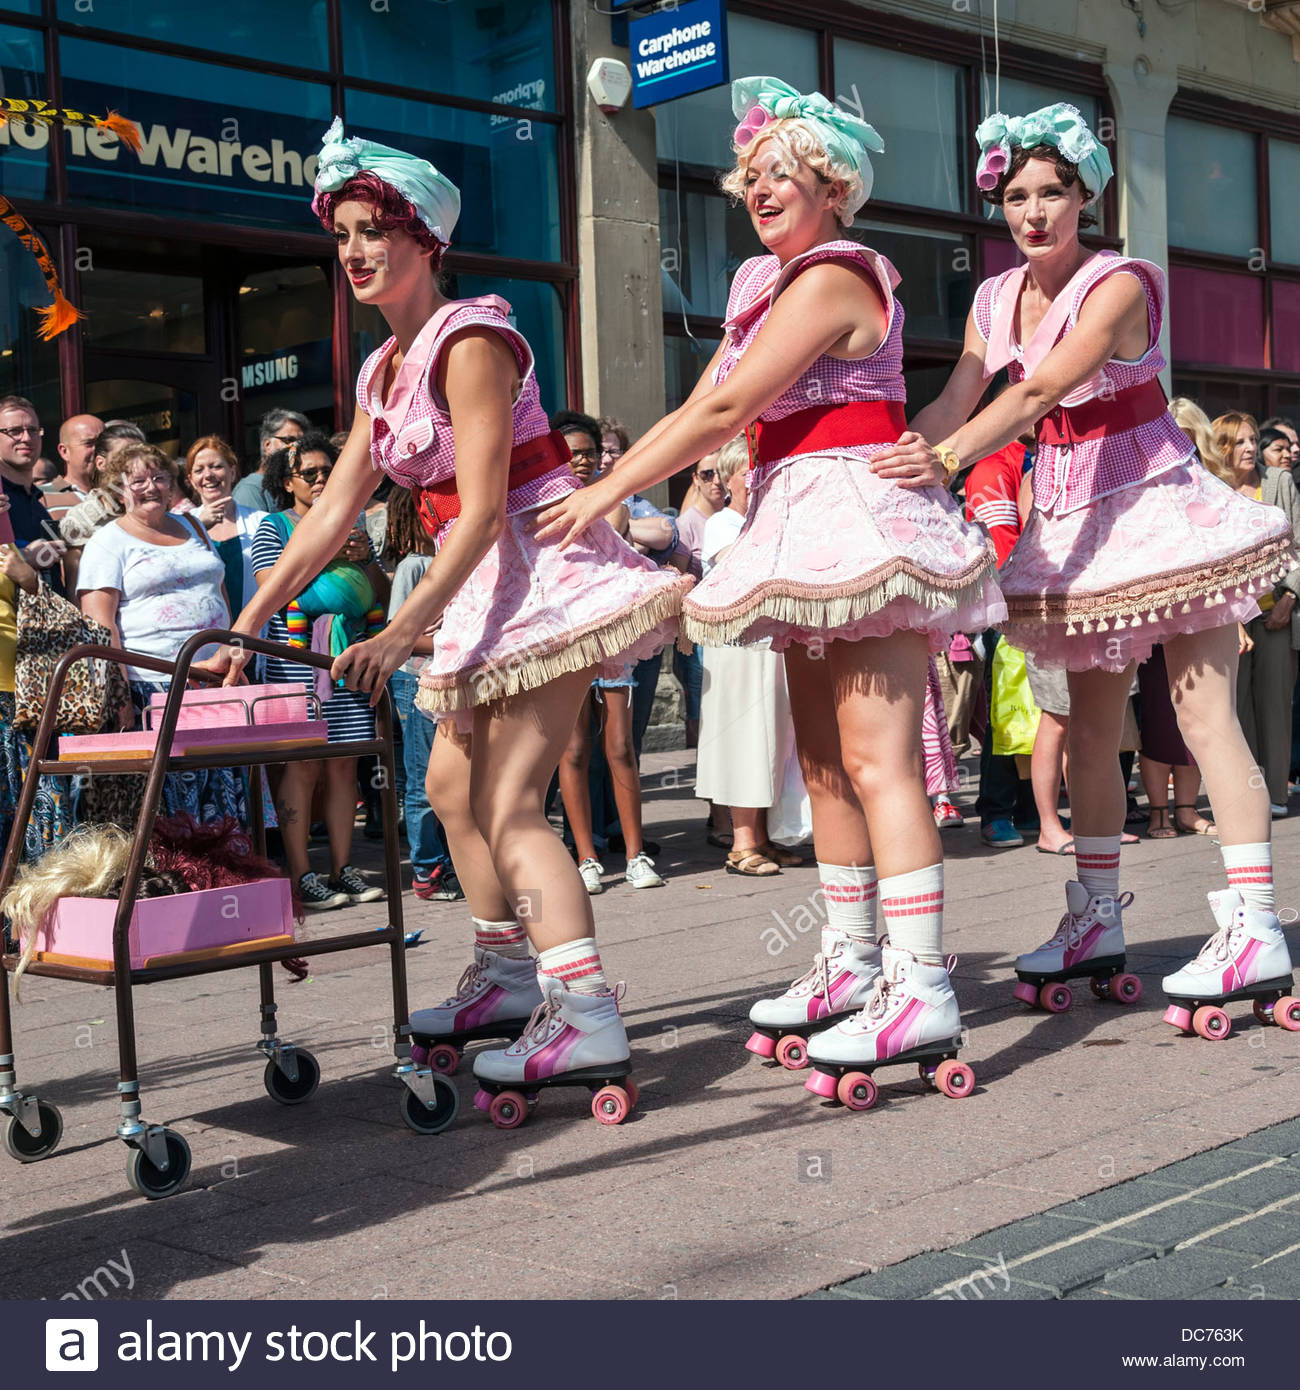 Kitsch & Sync Collective street theatre. Three women on roller skates in the streets of Cardiff, Wales, UK. - Stock Image